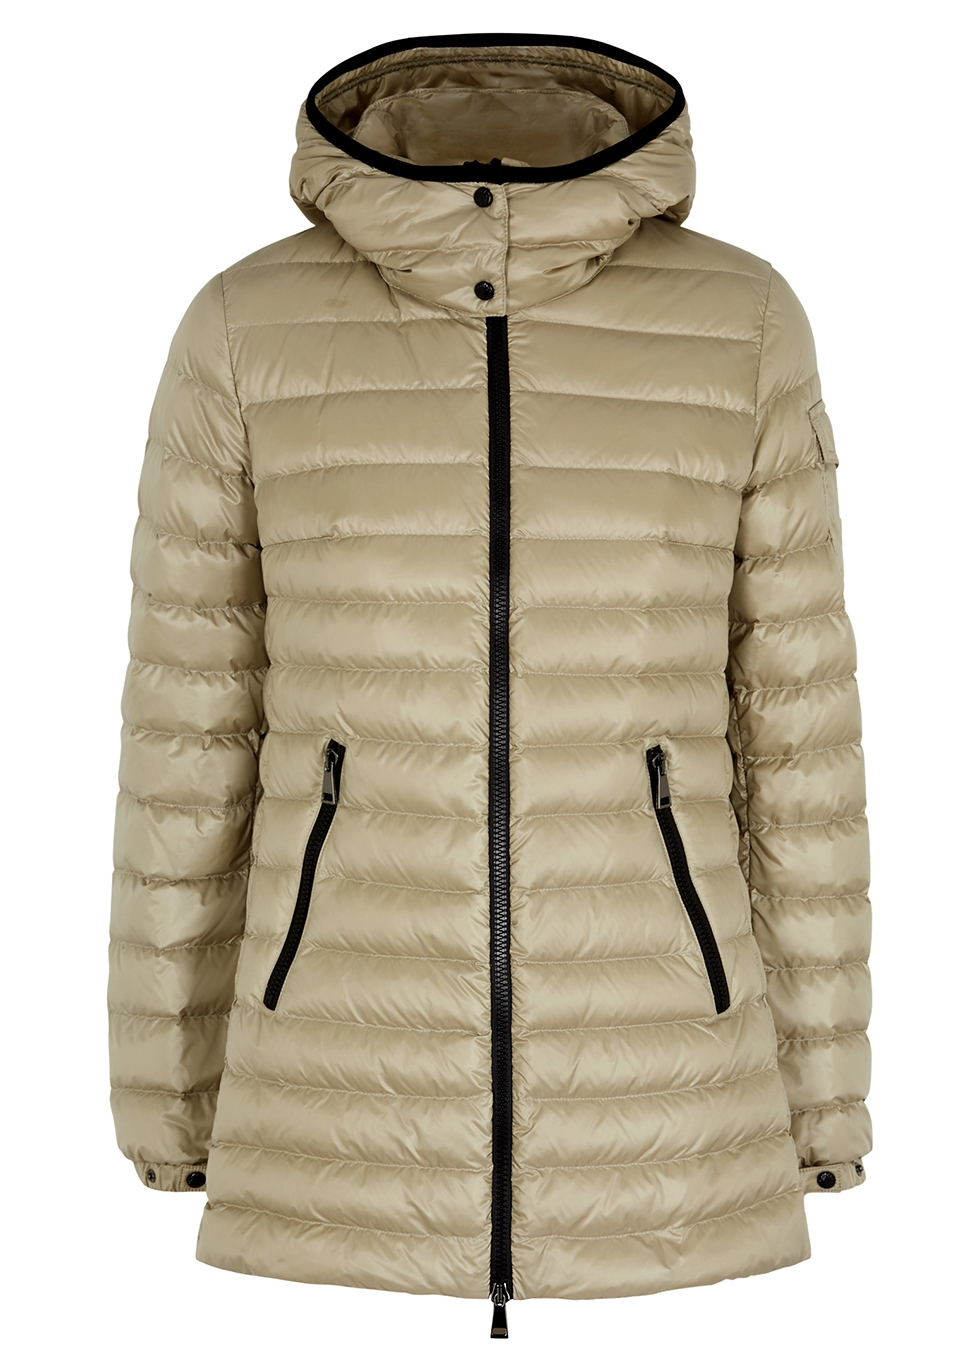 Menthe stone quilted shell jacket